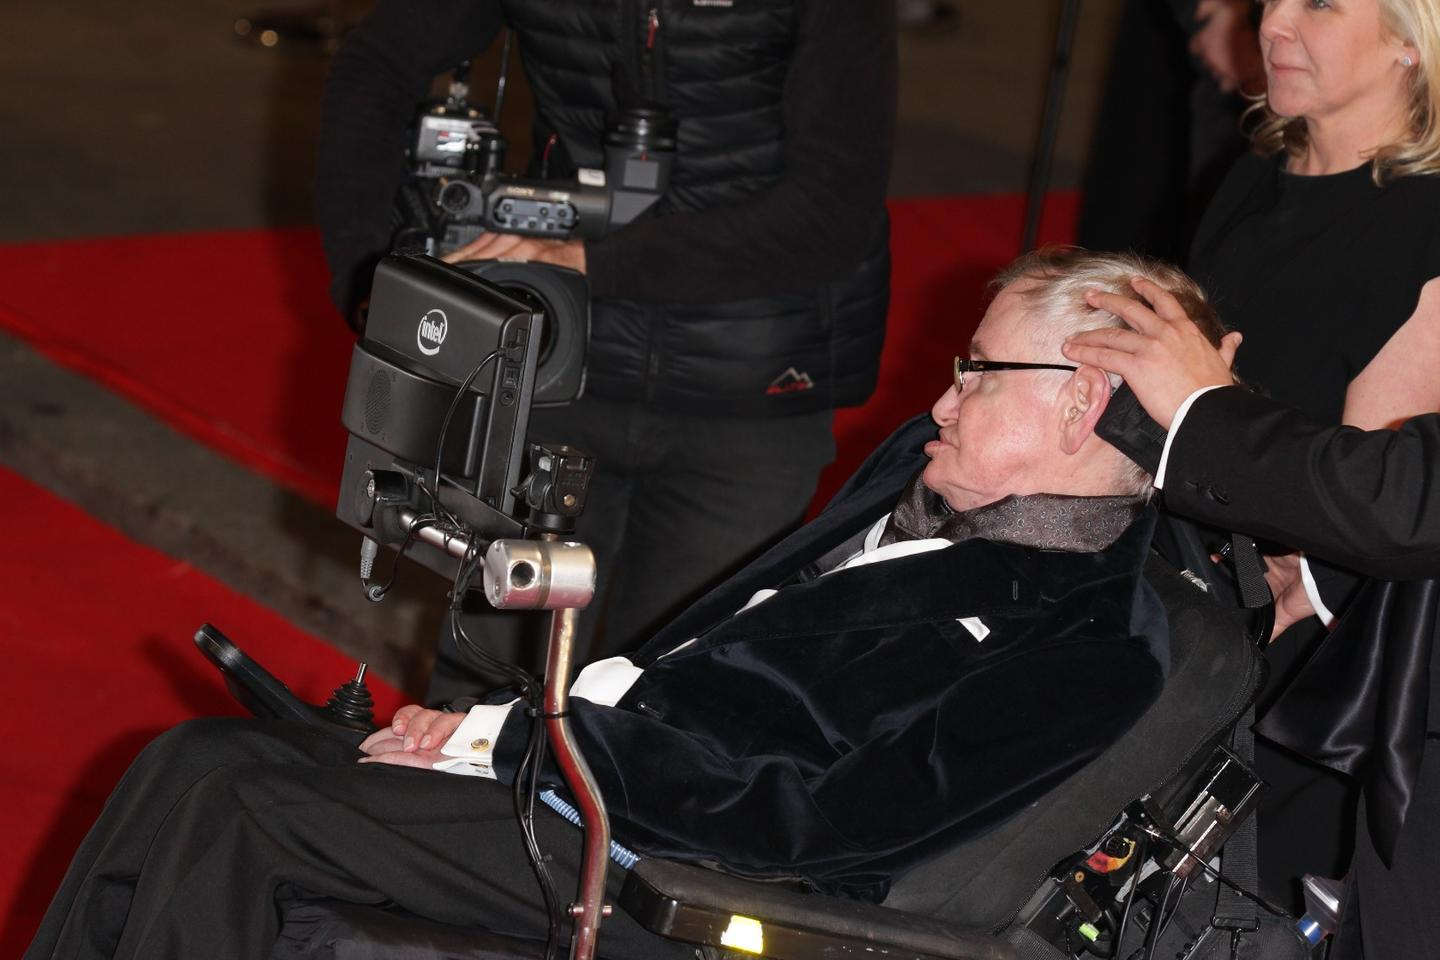 Stephen Hawking at the 2015 BAFTA awards